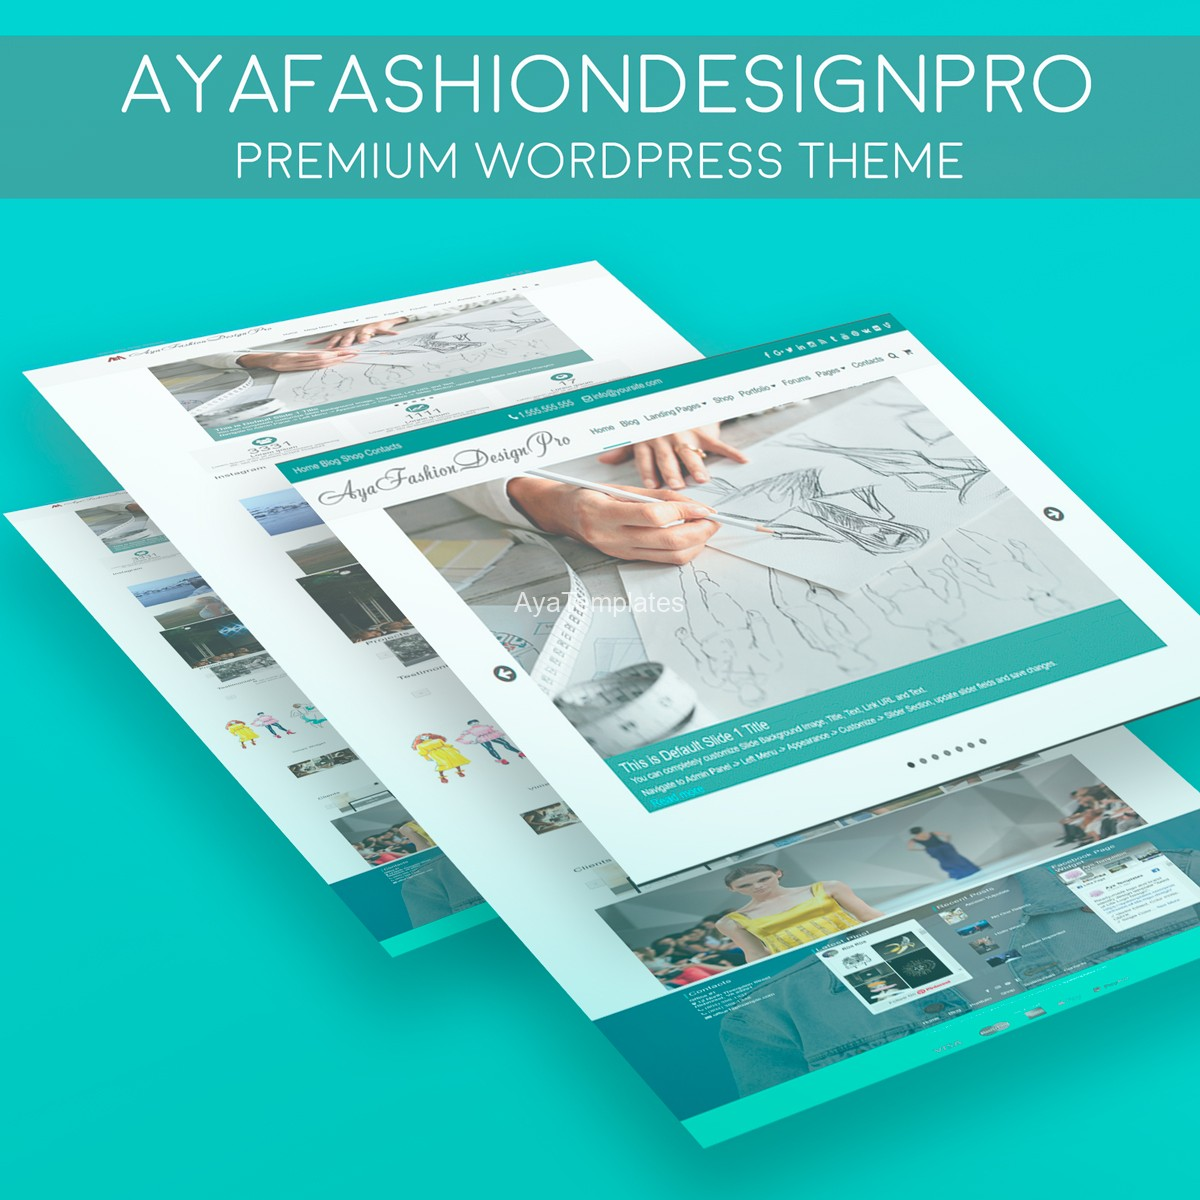 ayafashiondesignpro-premium-wordpress-theme-ayatemplates-collage